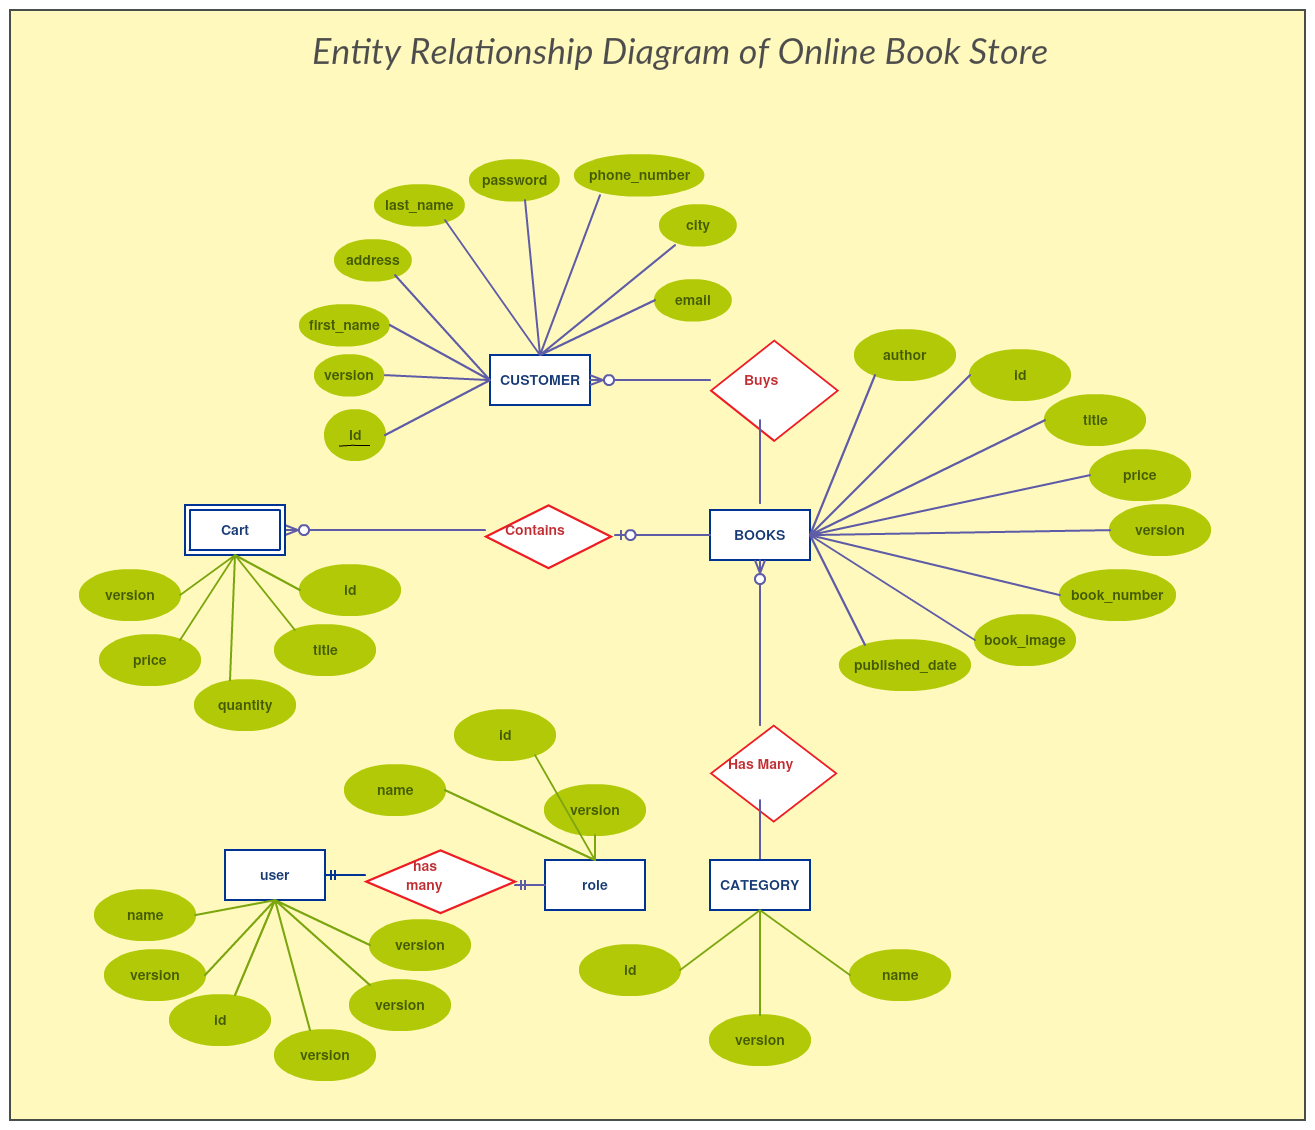 Erd- Entity Relationship Diagram | Relationship Diagram